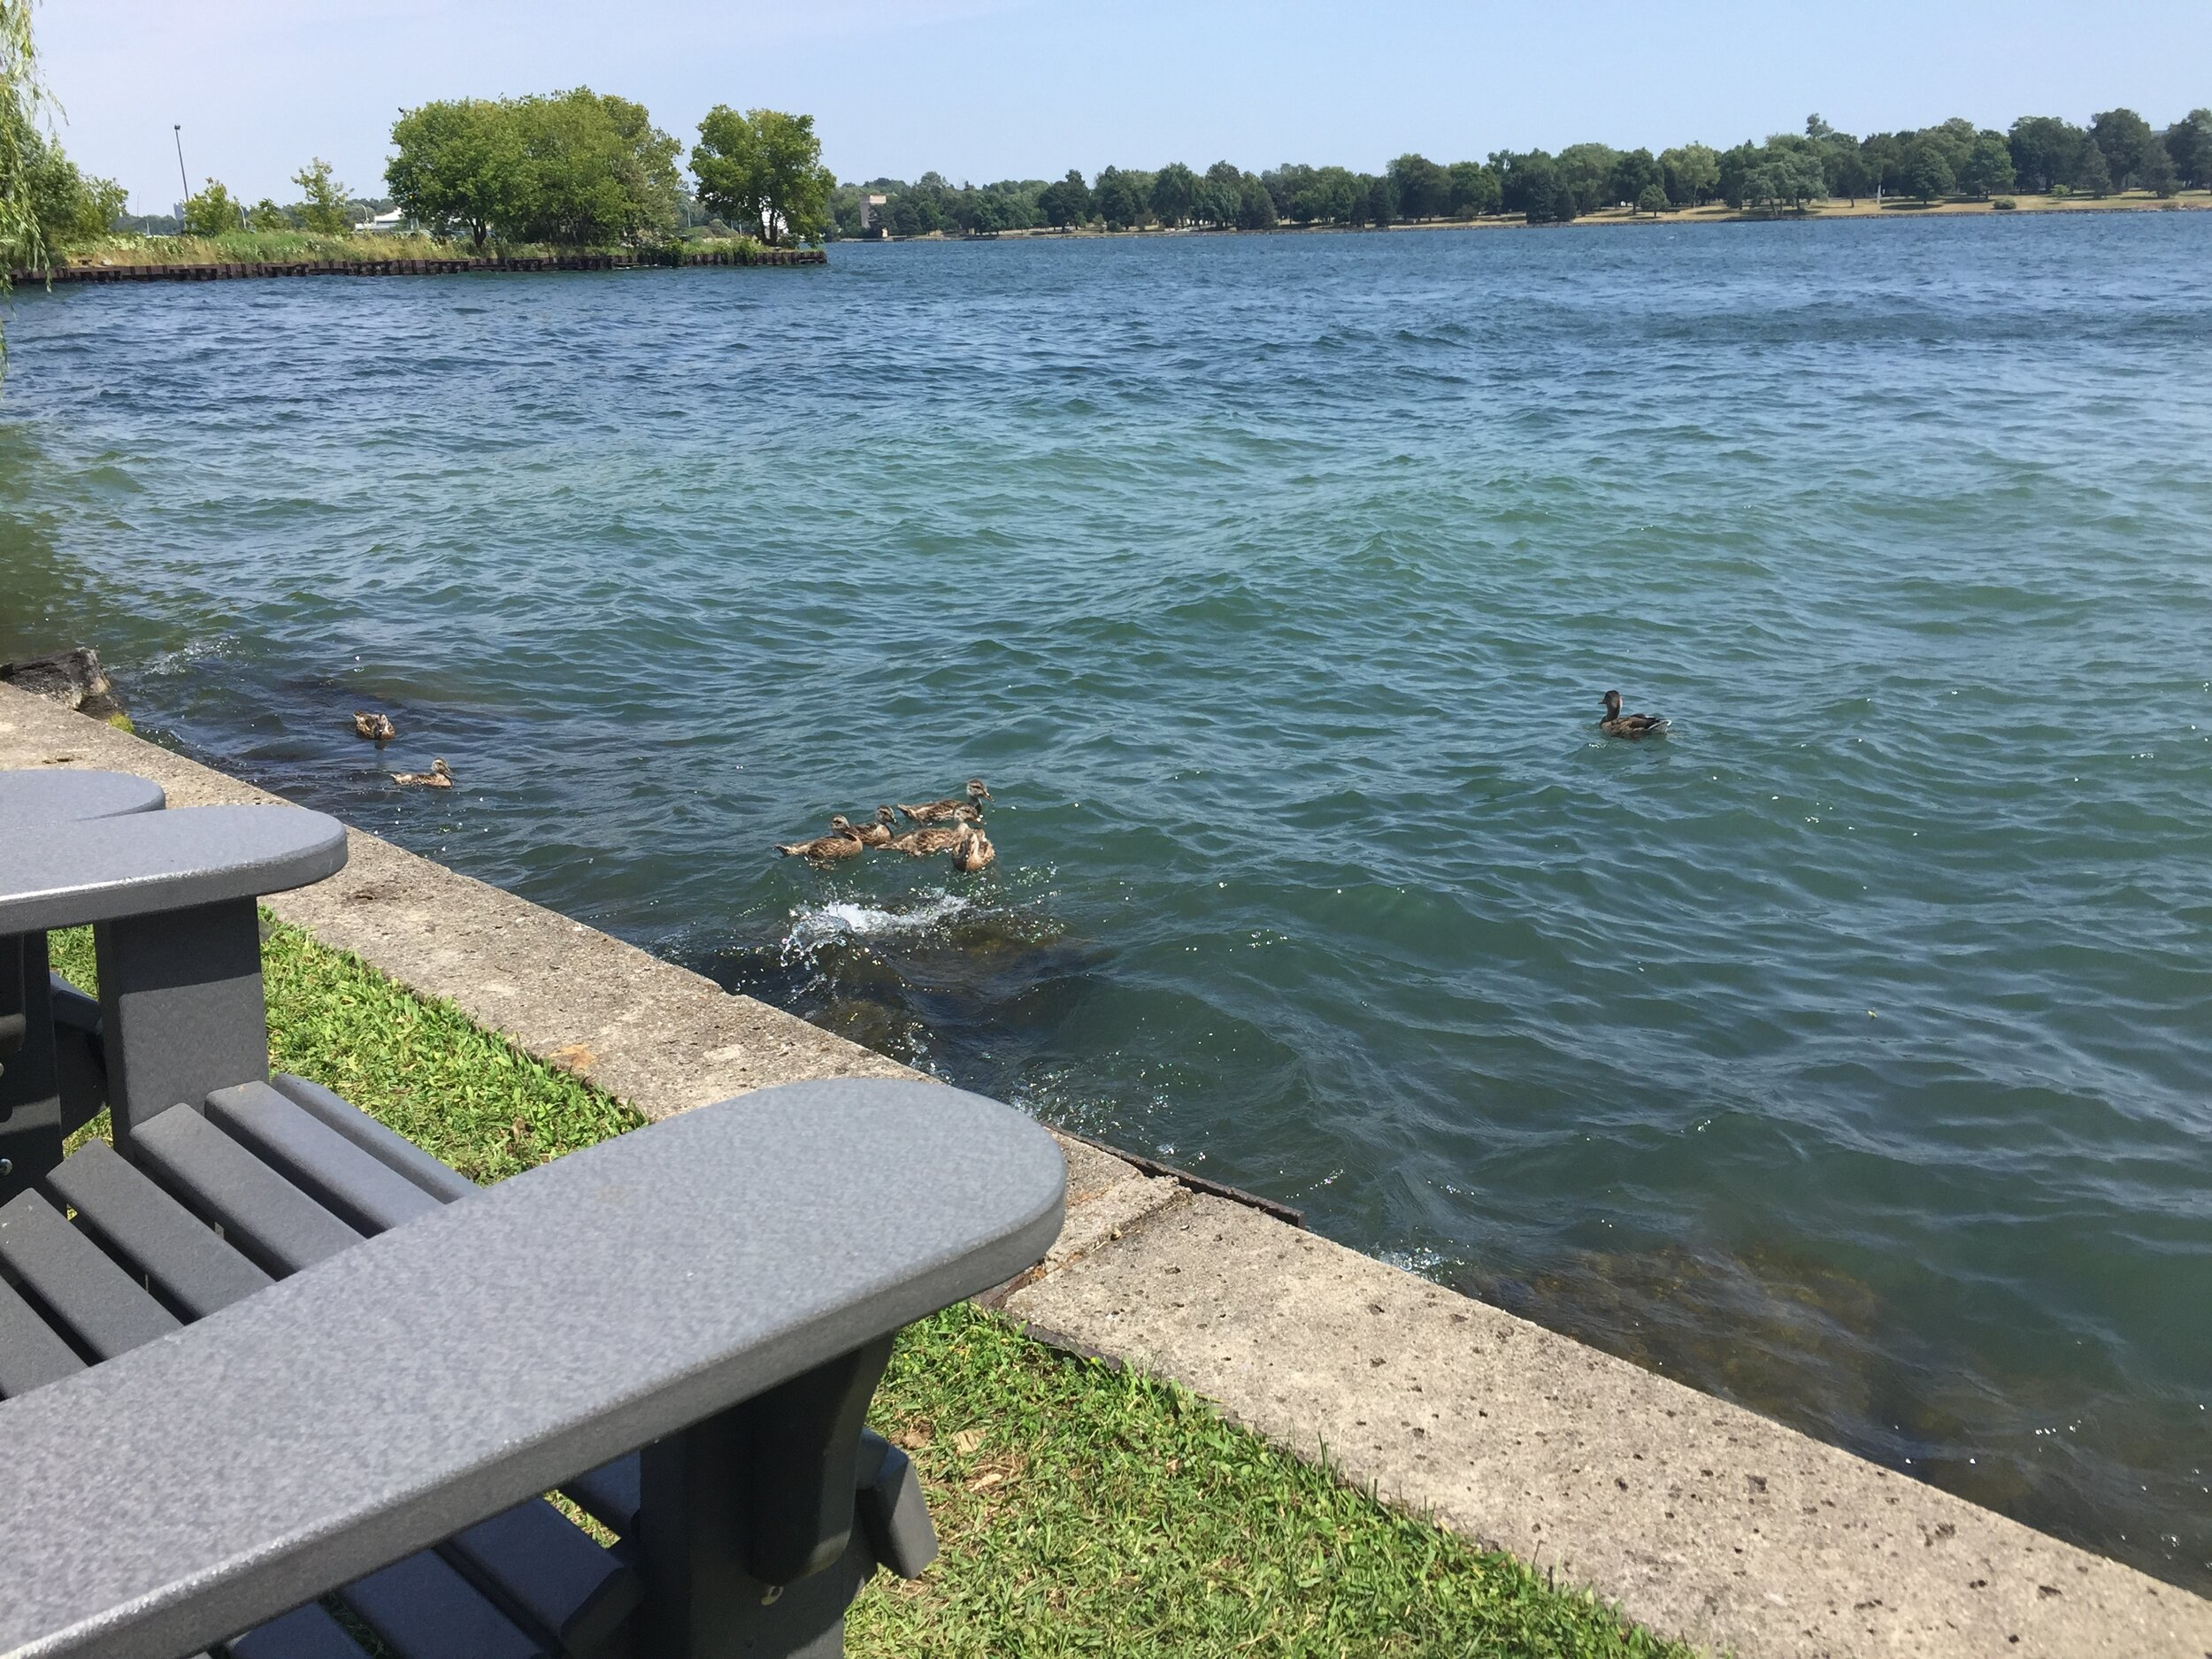 [image description: A cute little family of ducks swimming past where we were sitting on the edge of the lake.]